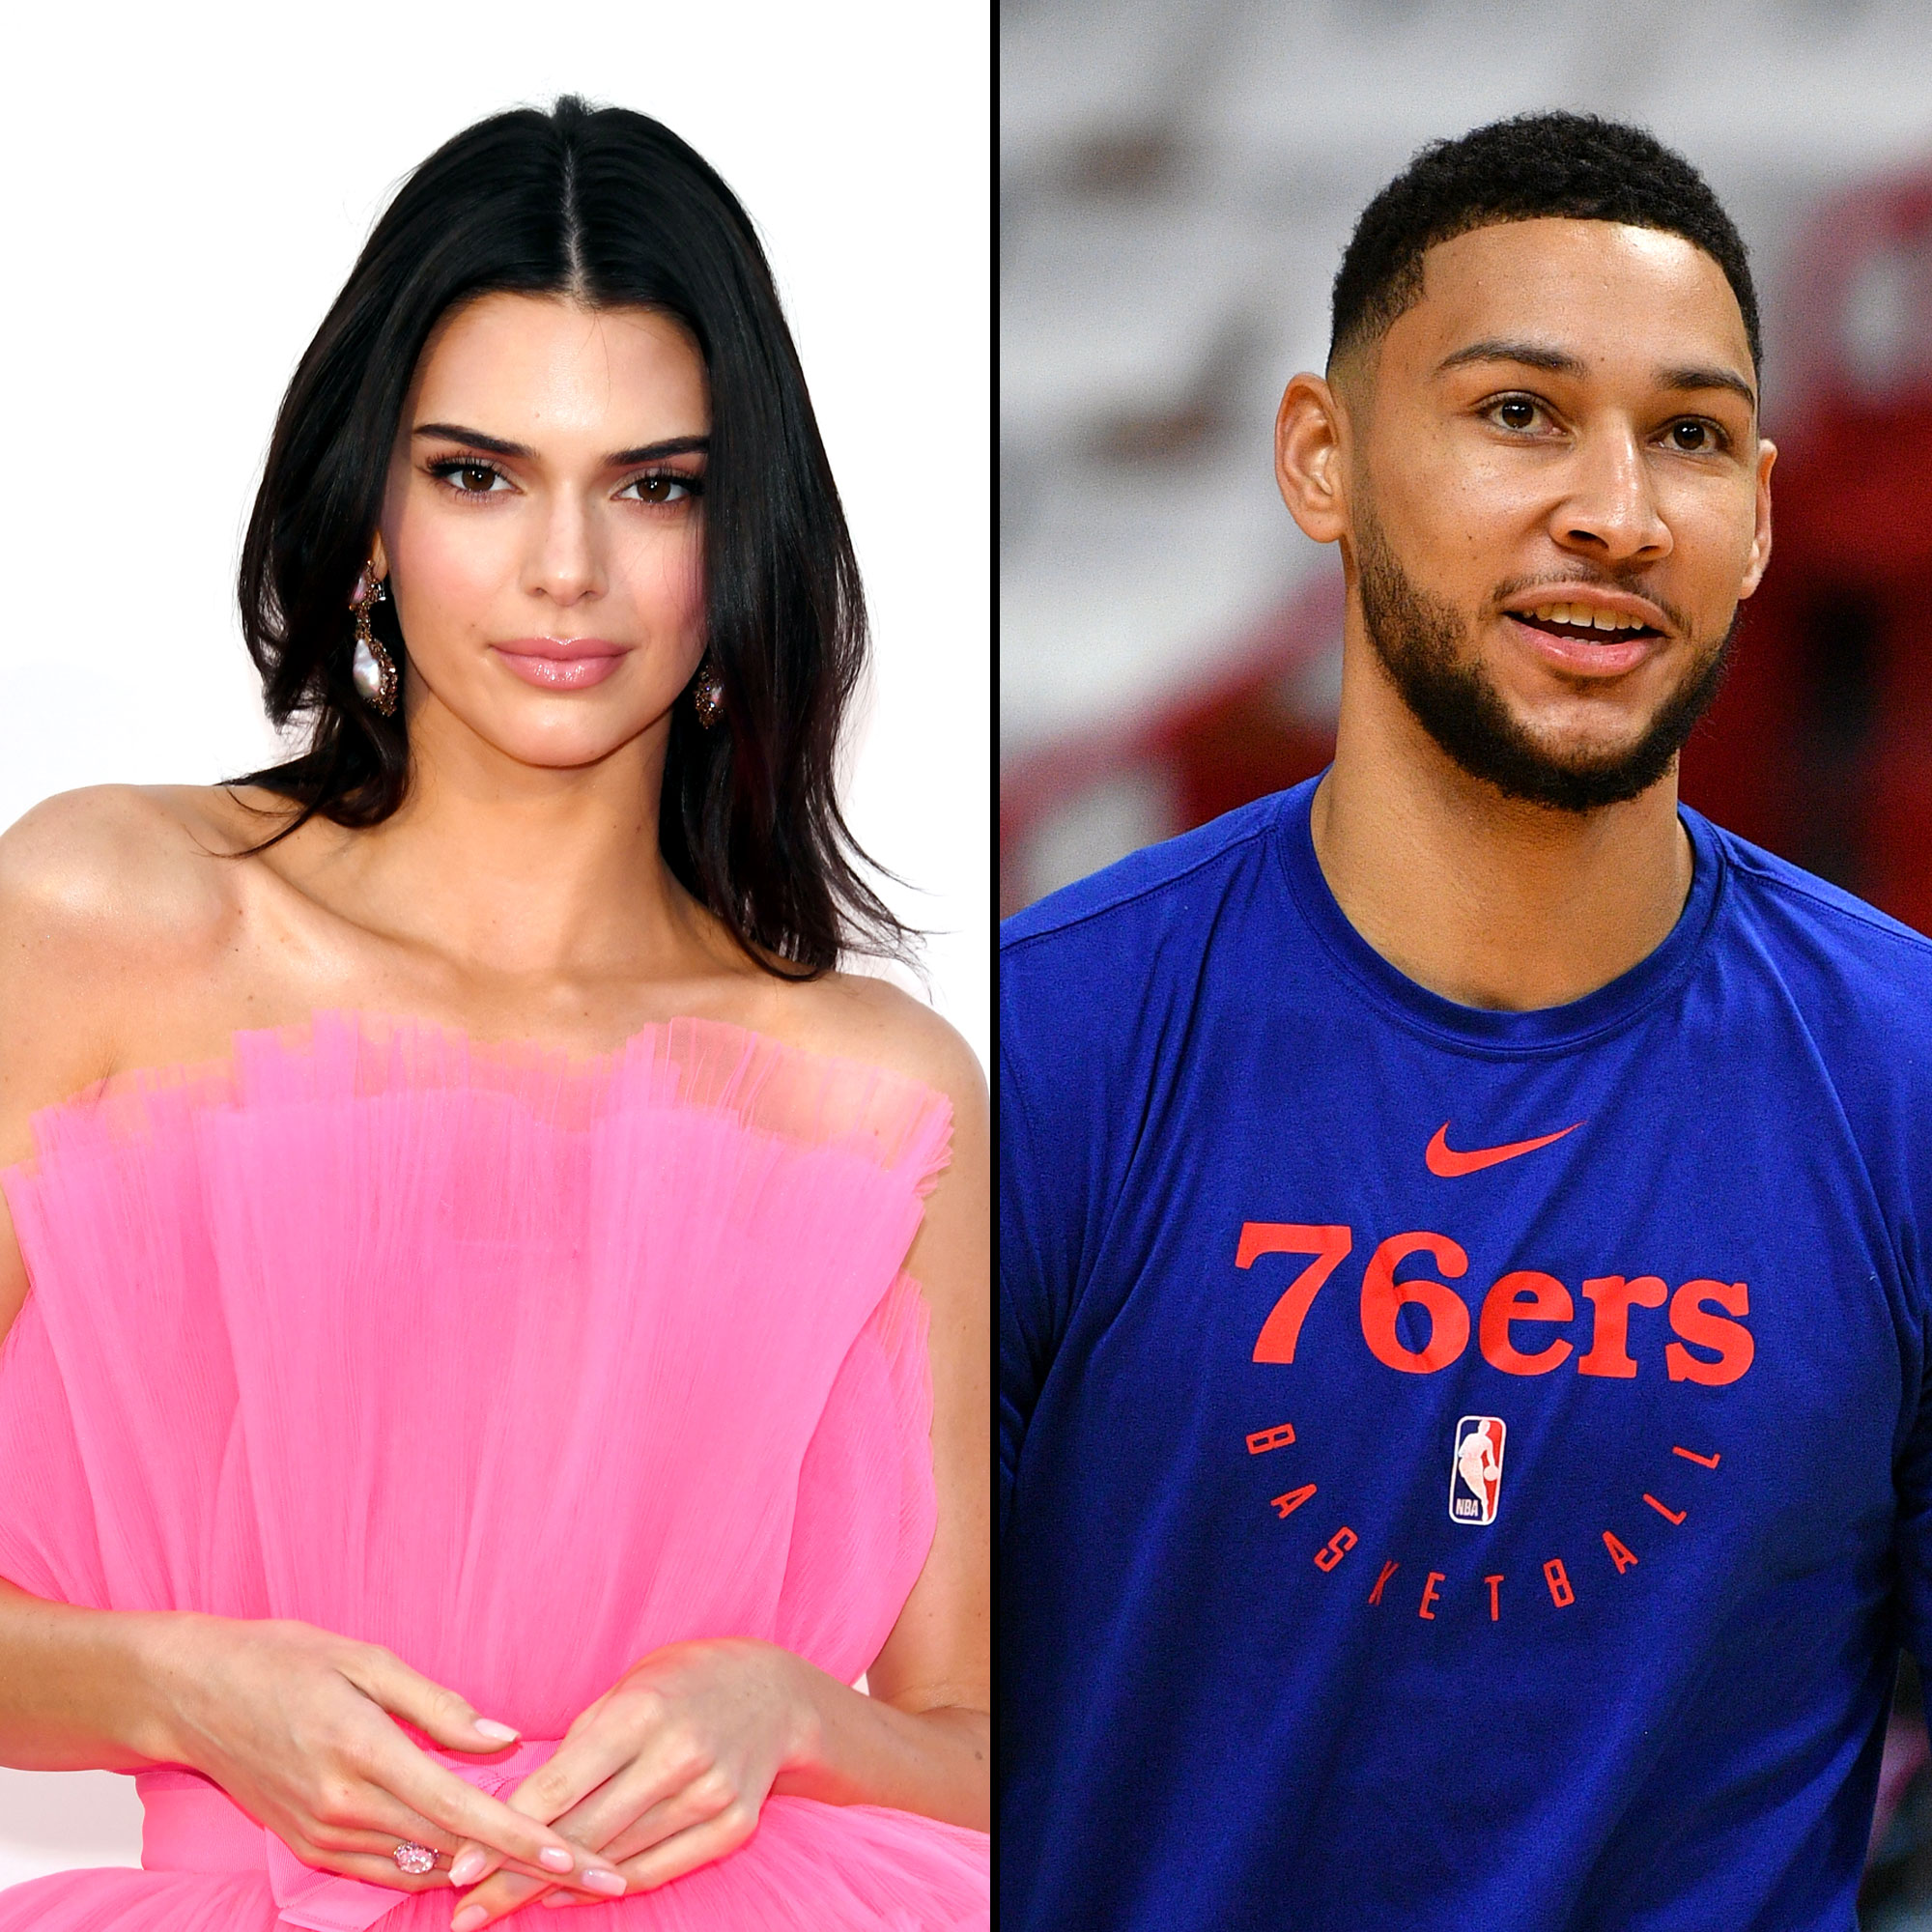 ebaf57d98 Ben Simmons 'Likes' Ex-Girlfriend Kendall Jenner's Instagram Post 1 Month  After Split. By Erin Crabtree